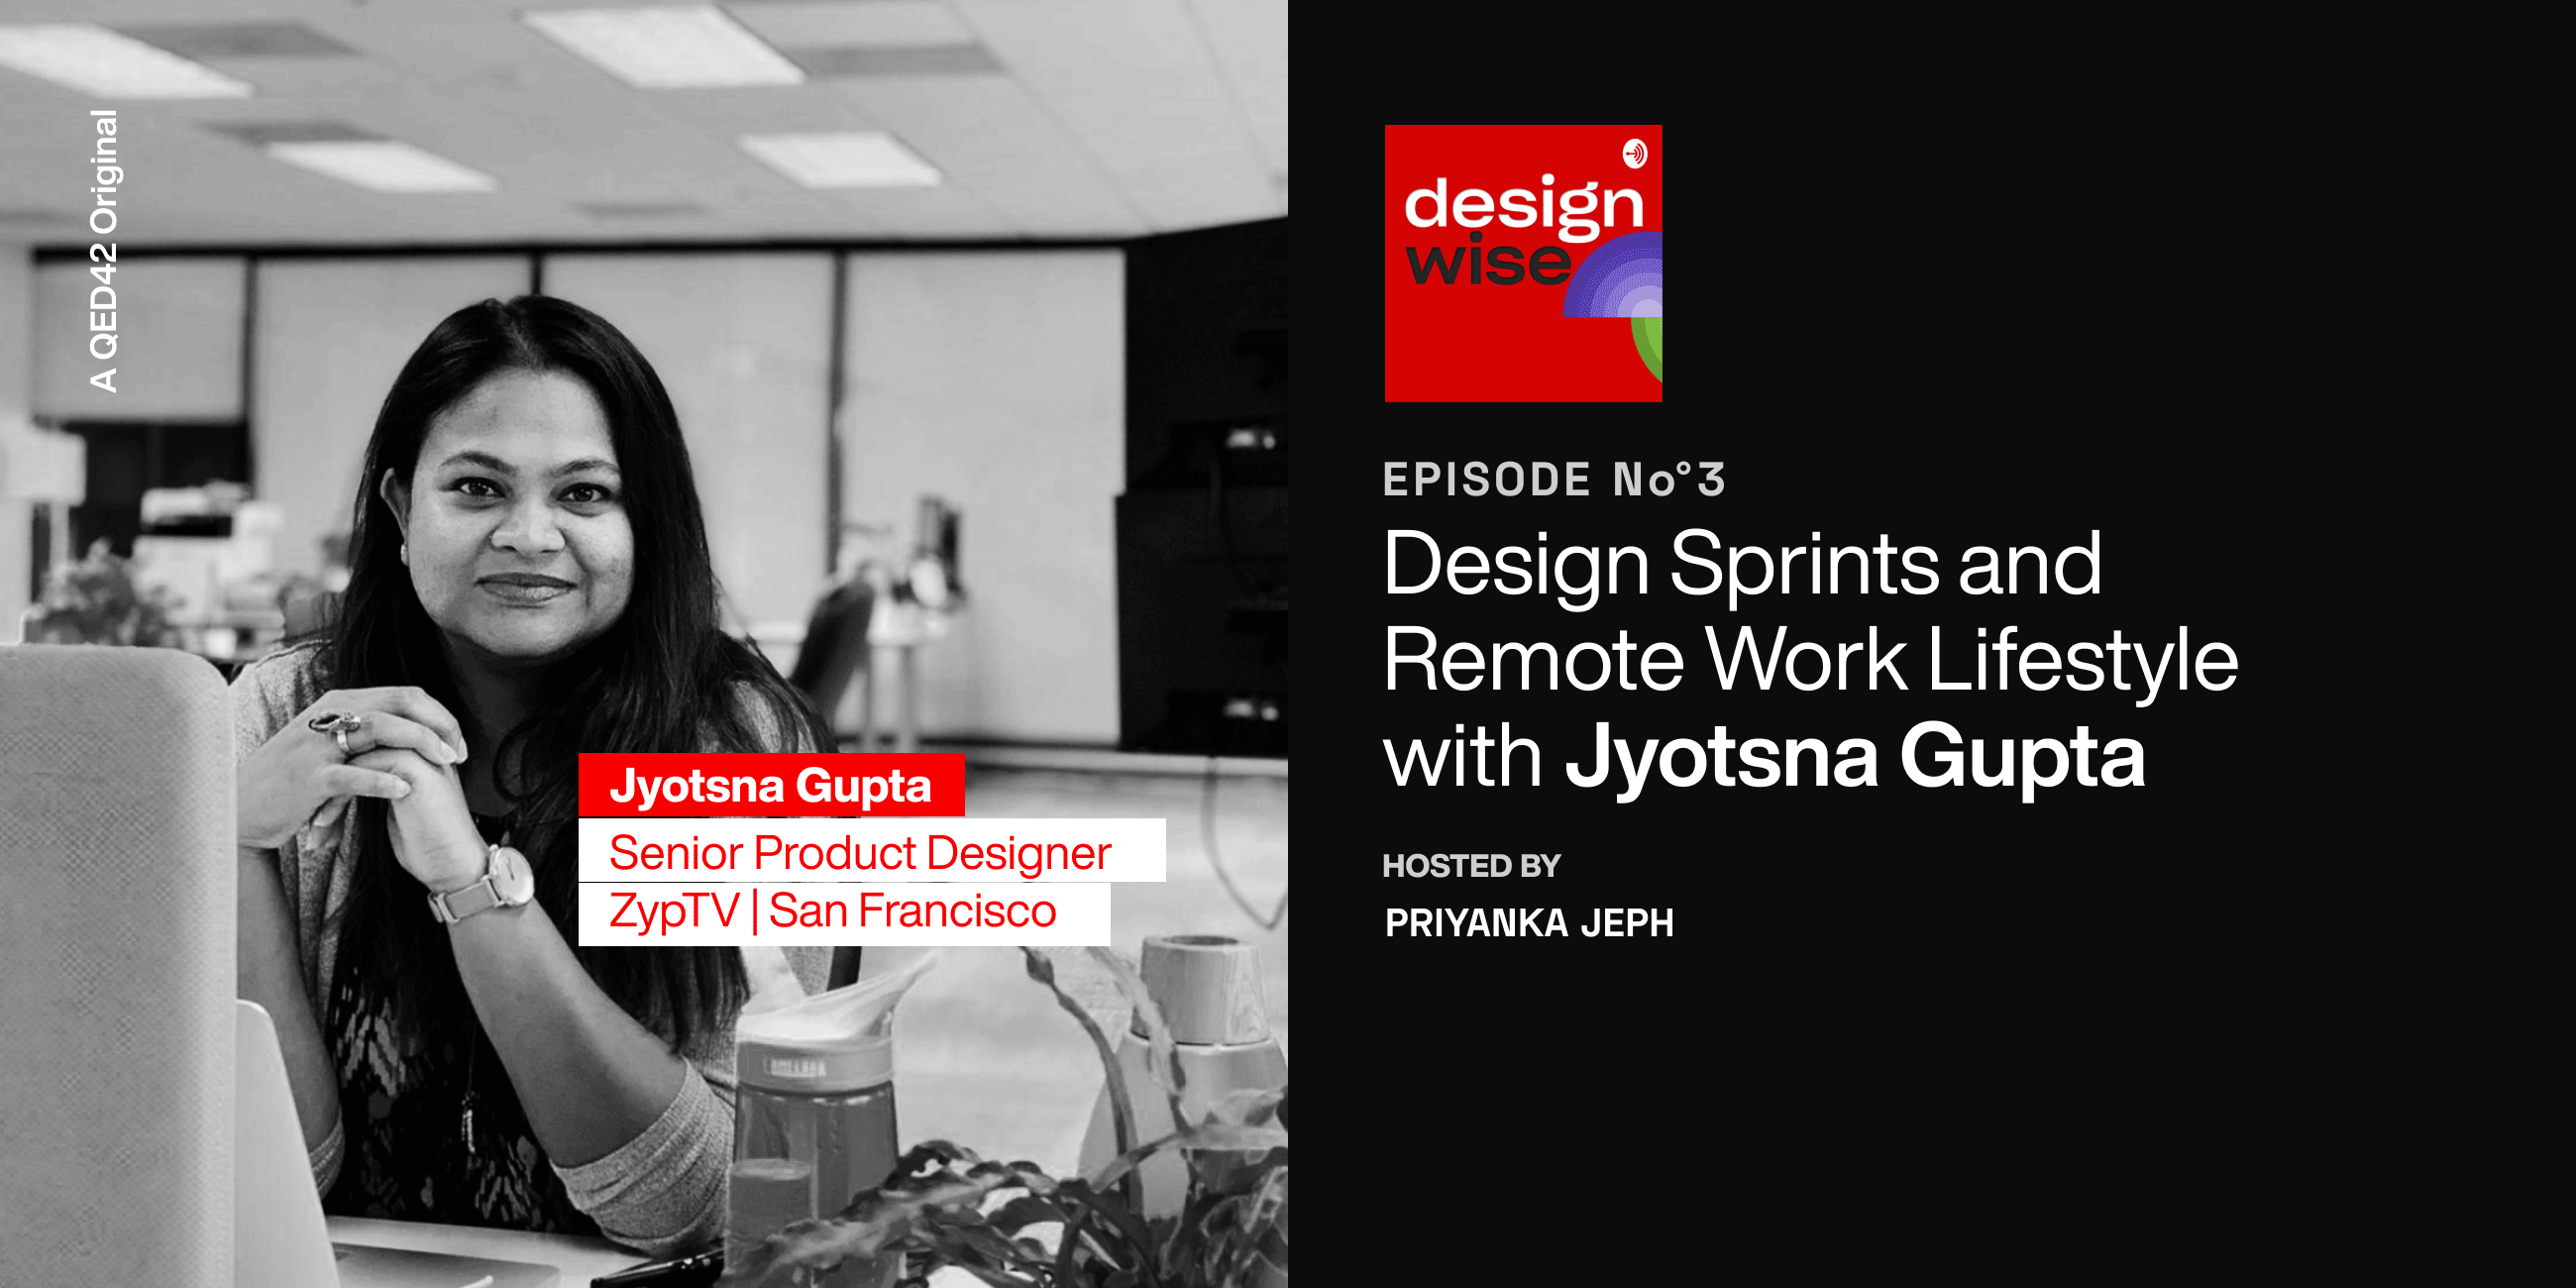 Design Sprints and Remote Work Lifestyle with Jyotsna Gupta & Priyanka Jeph